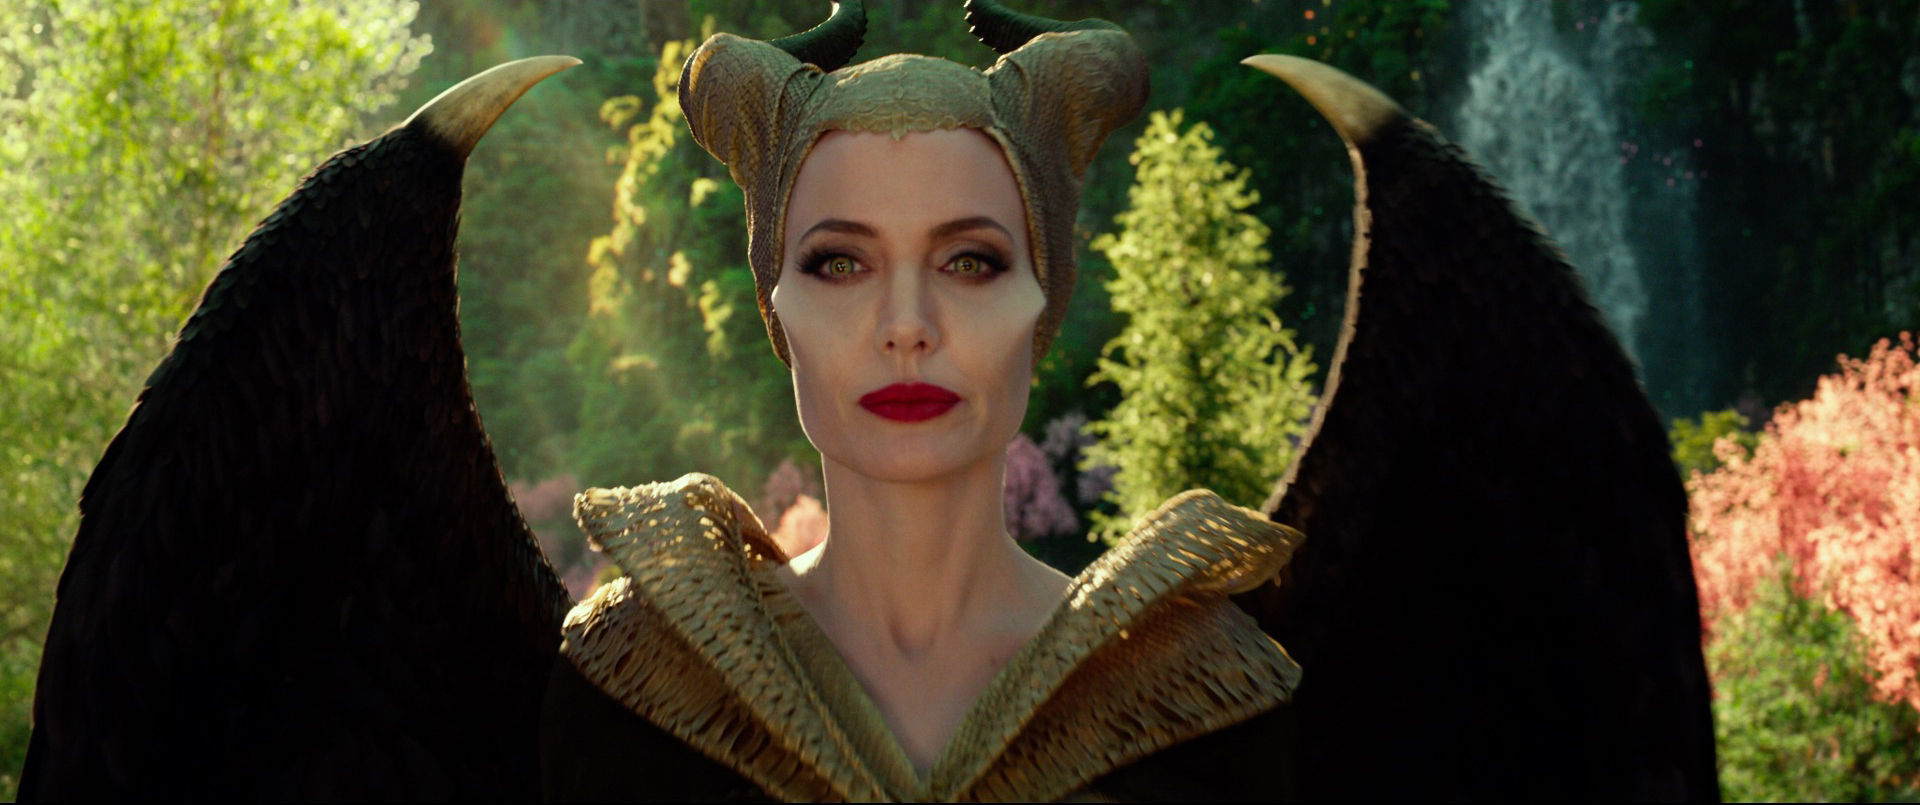 La secuela Maleficent: Mistress of Evil destrona a Joker del número uno